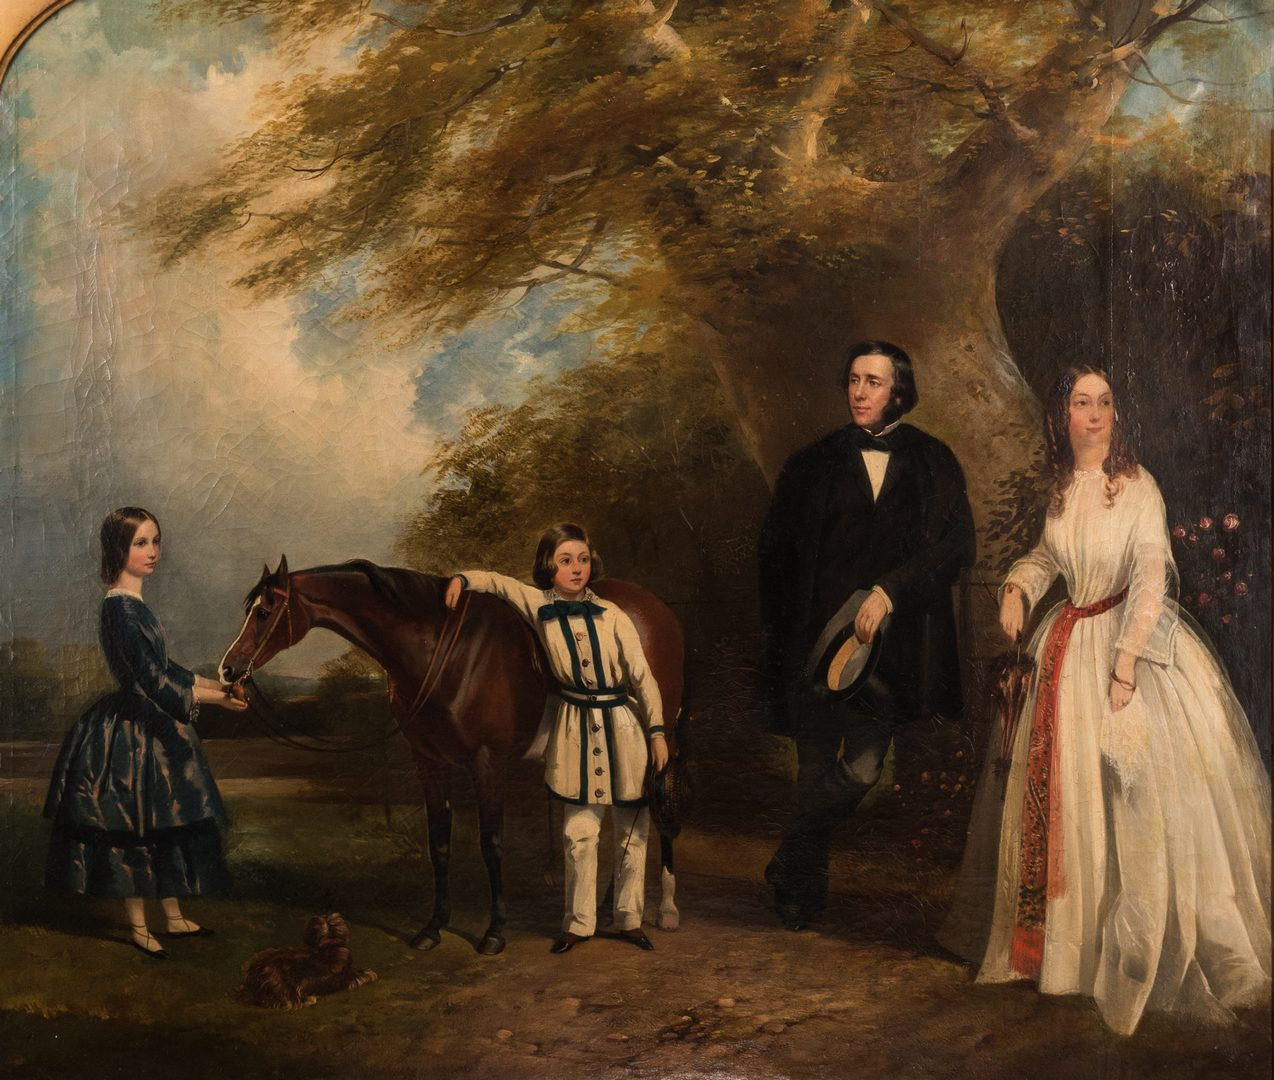 Lot 105: Portrait of a Family with Dog and Pony, circa 1845